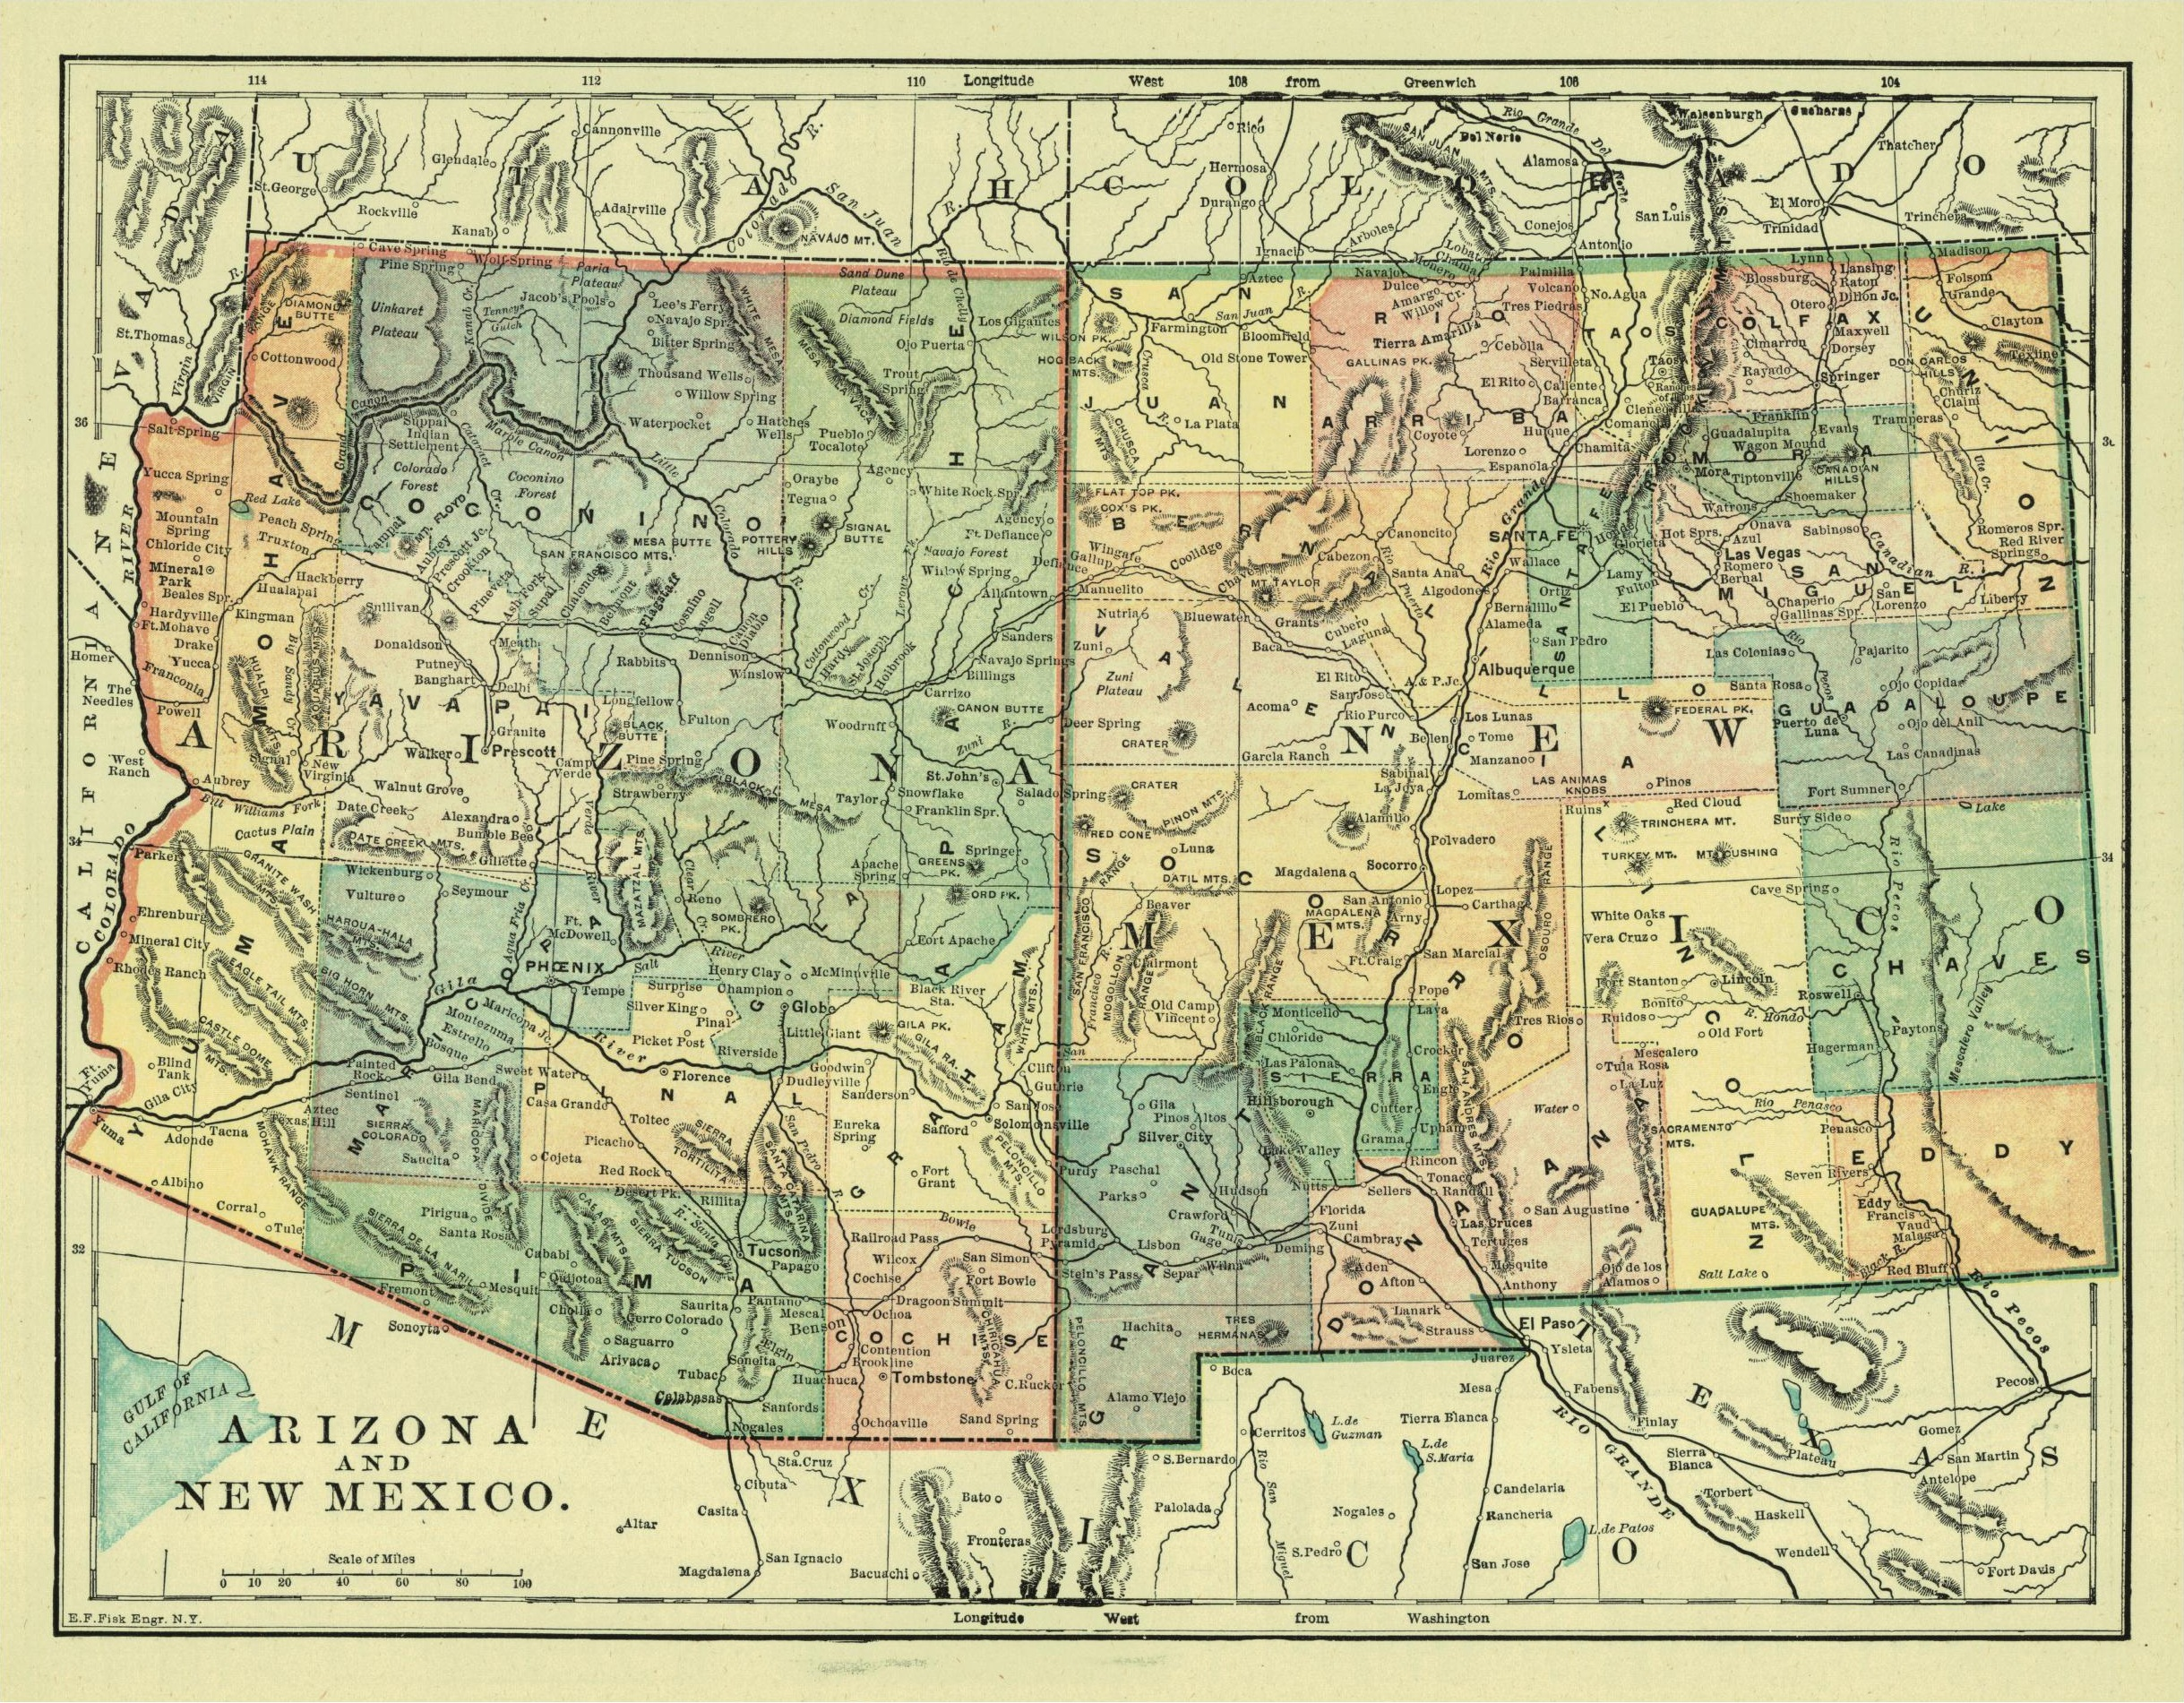 FileArizona And New Mexico Territories Map Jpg Wikimedia - Map of arizona and new mexico